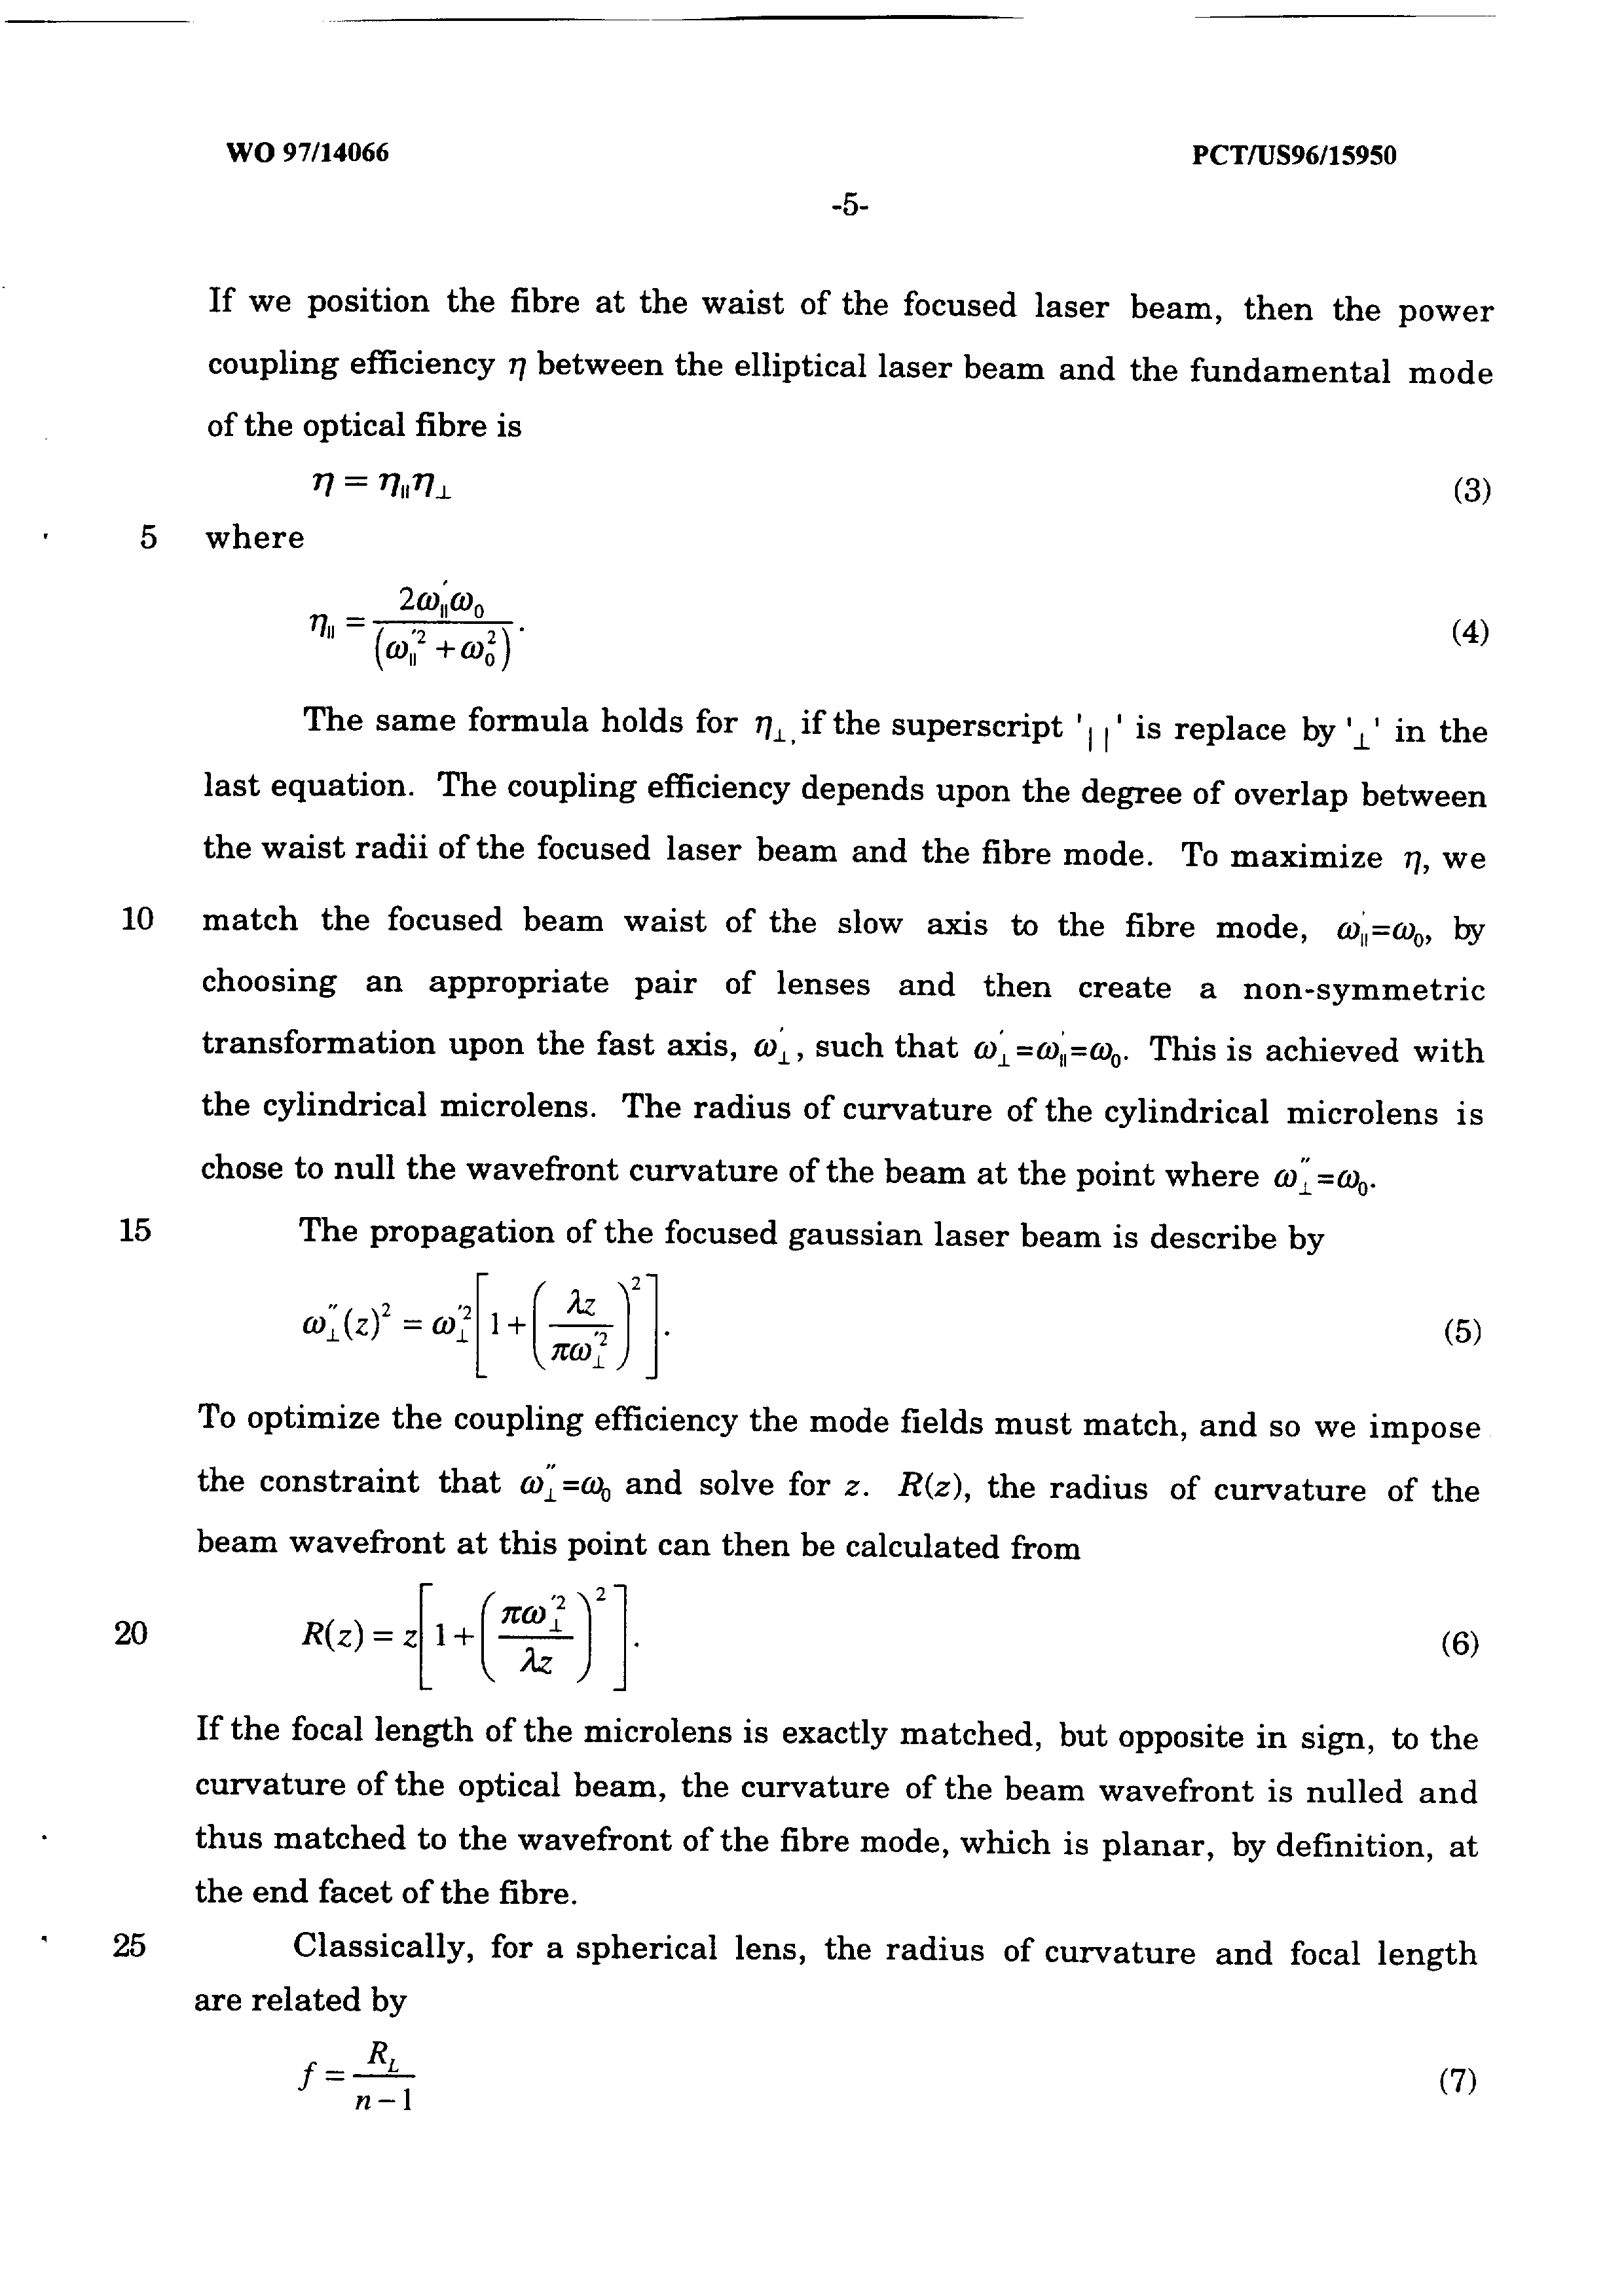 WO 1997/014066 A2 - Method For Improving The Coupling Efficiency Of